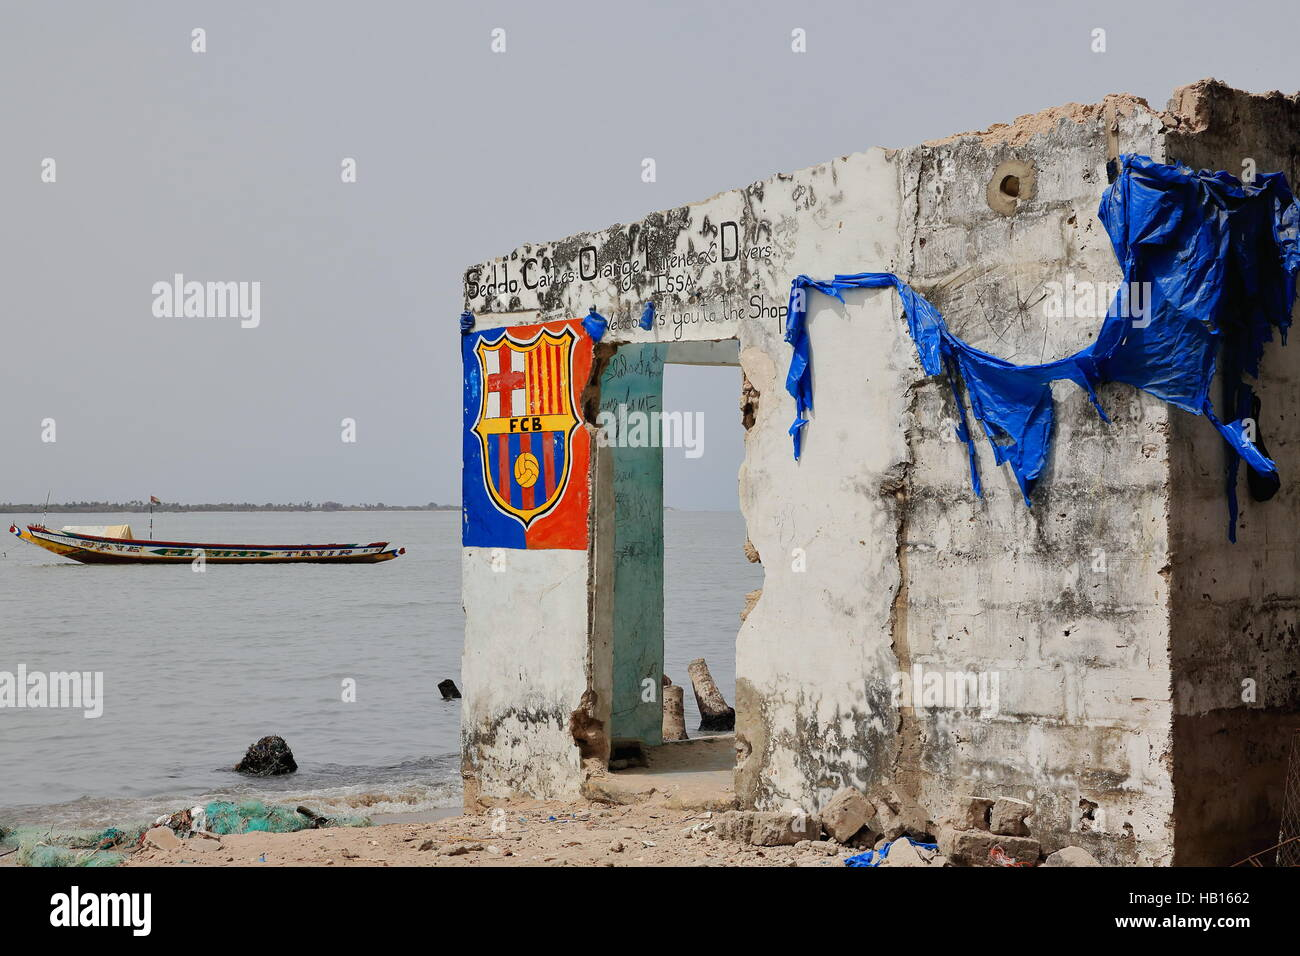 Diogue island, Senegal-April 15, 2014: The ruins of a deserted shop on the shore facing the mouth of the Casamance - Stock Image